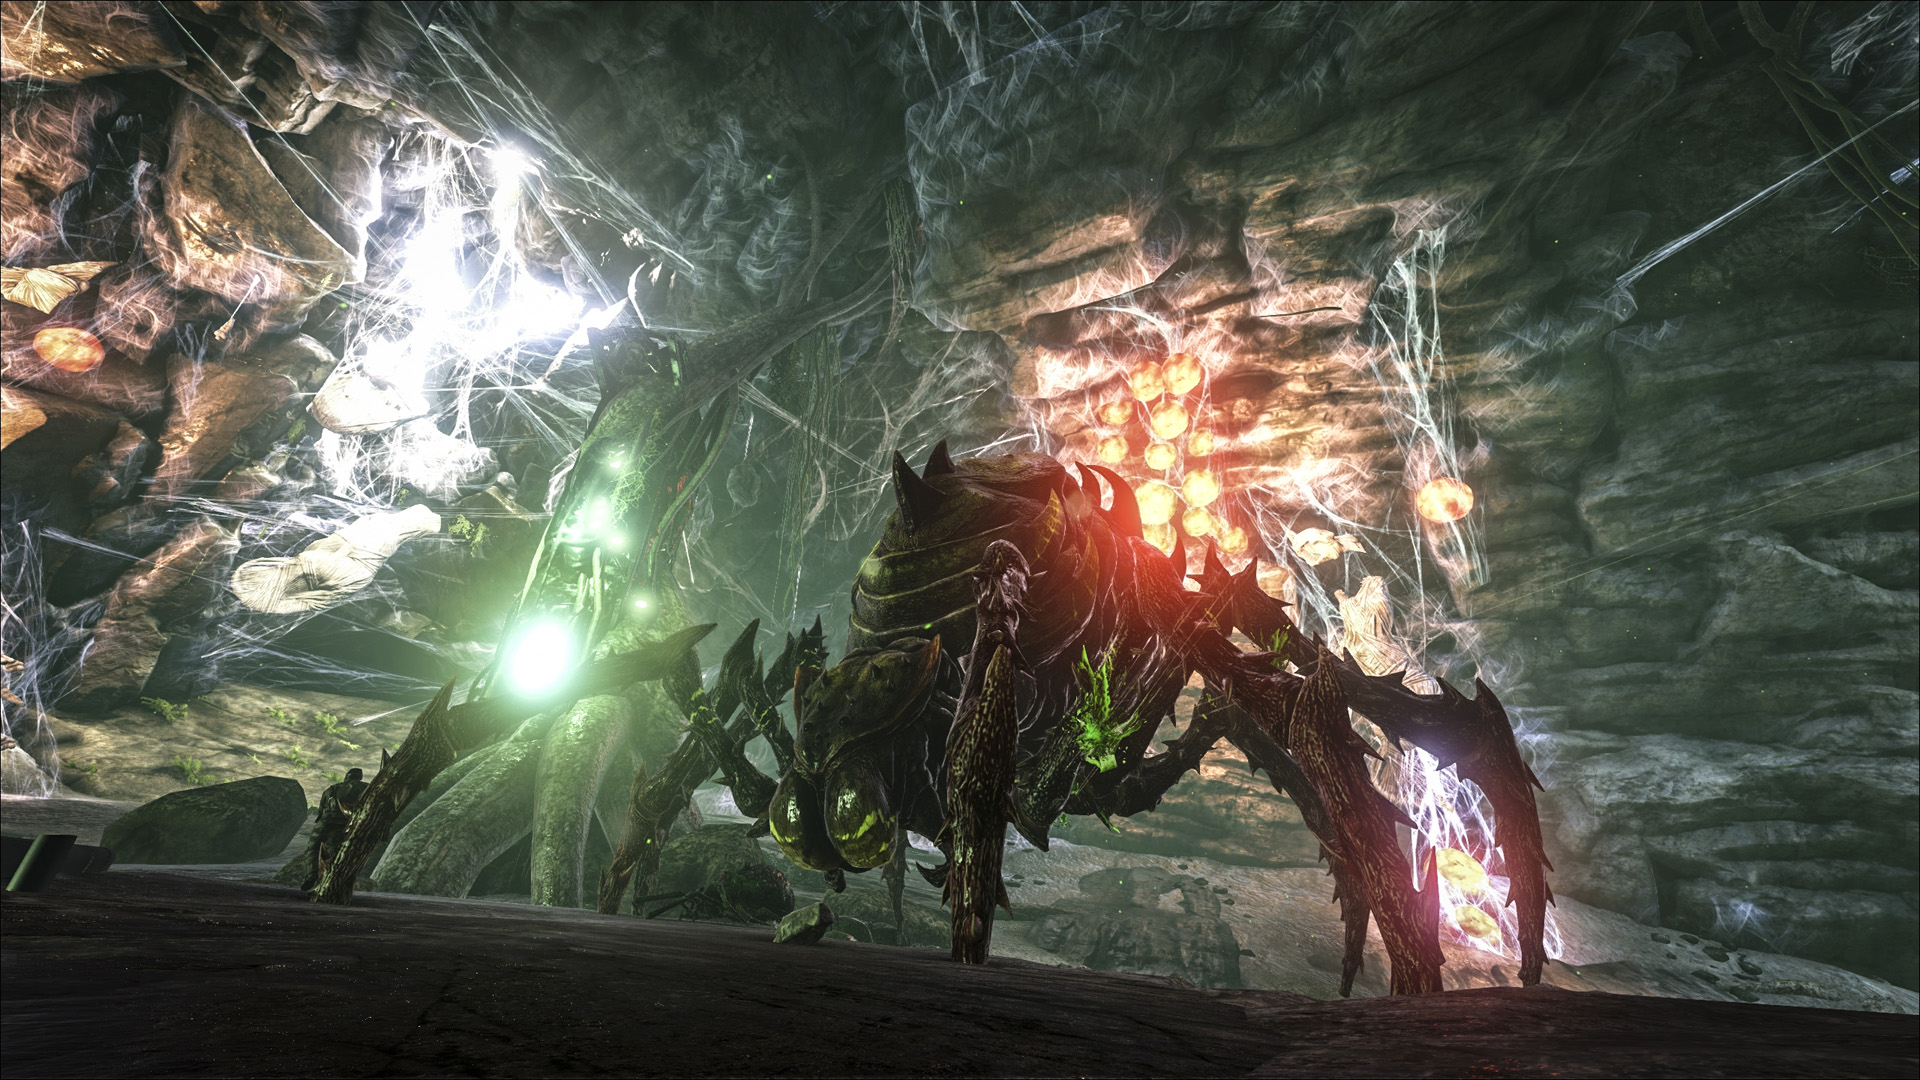 ARK: Survival Evolved System Requirements - Can I Run It